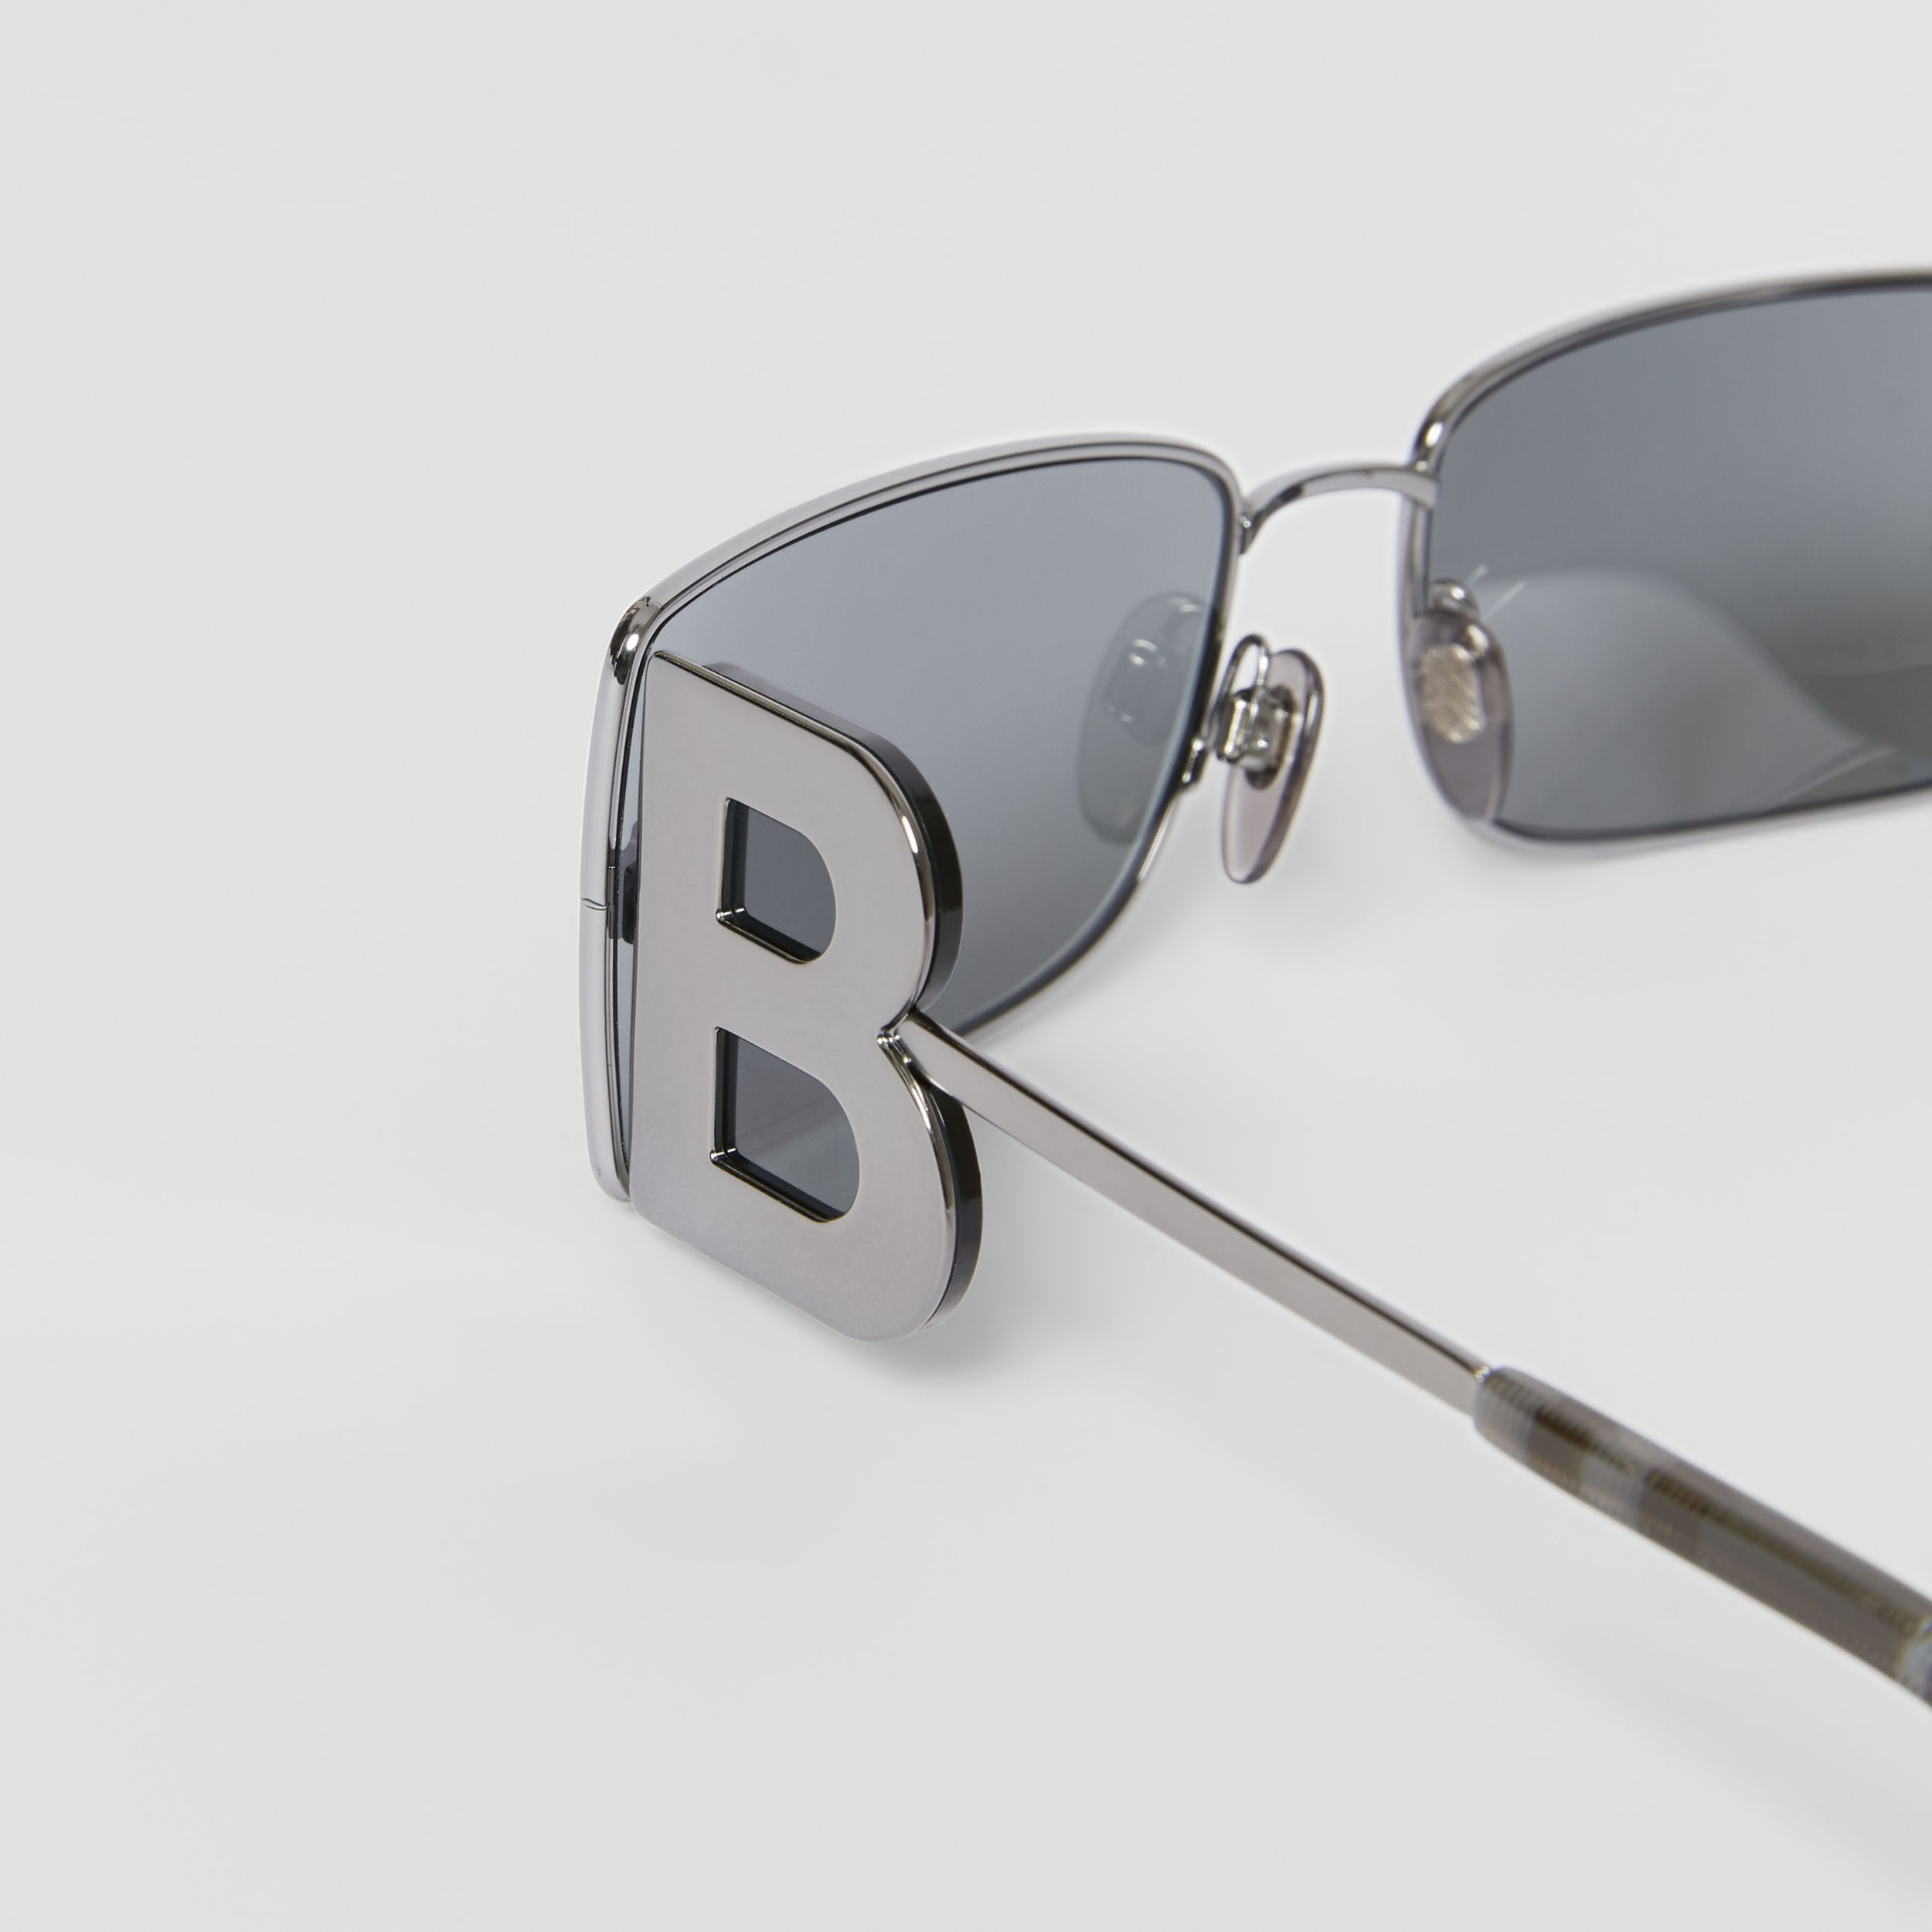 'B' Lens Detail Rectangular Frame Sunglasses in Gunmetal Grey | Burberry United States - 2